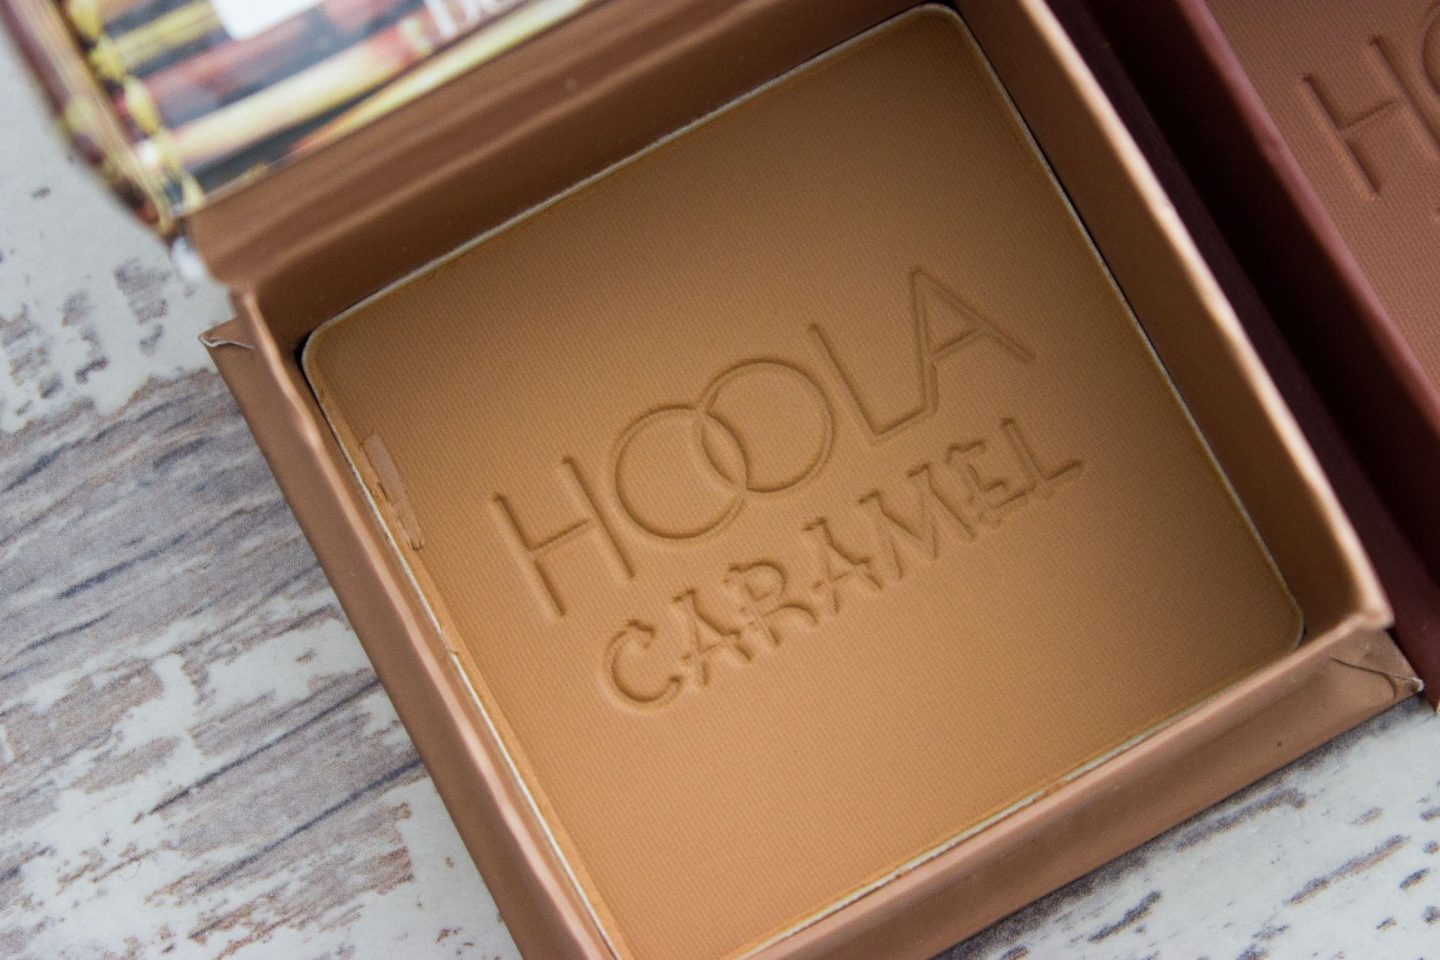 Benefit Hoola Bronzer Caramel Toasted UK Review Dark Skin Swatches